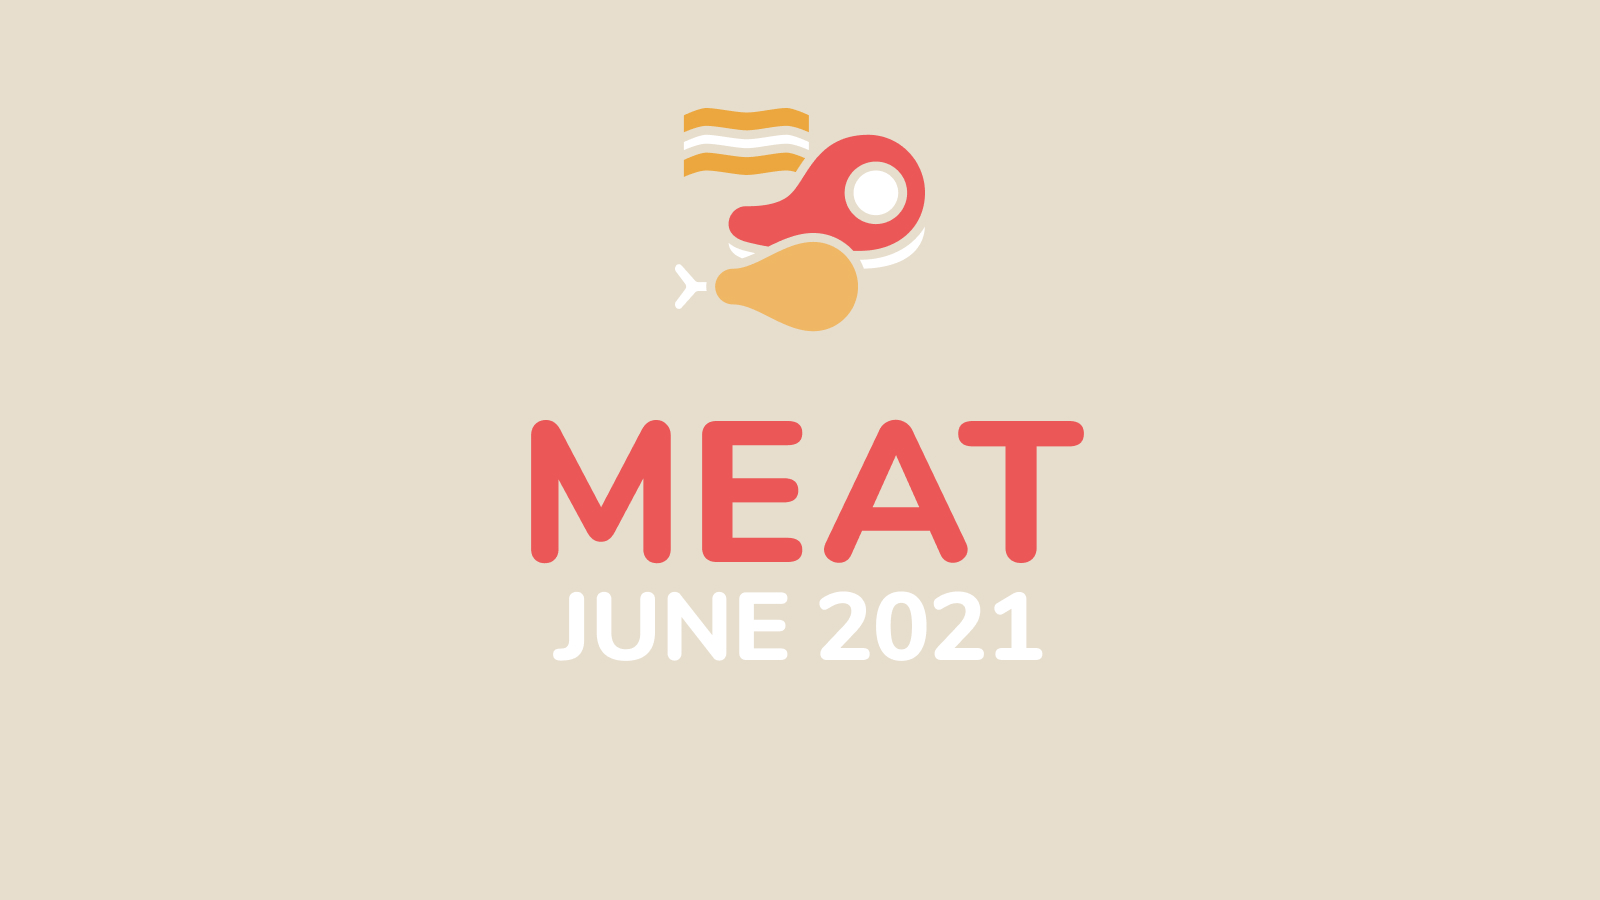 Picture that says MEAT June 2021